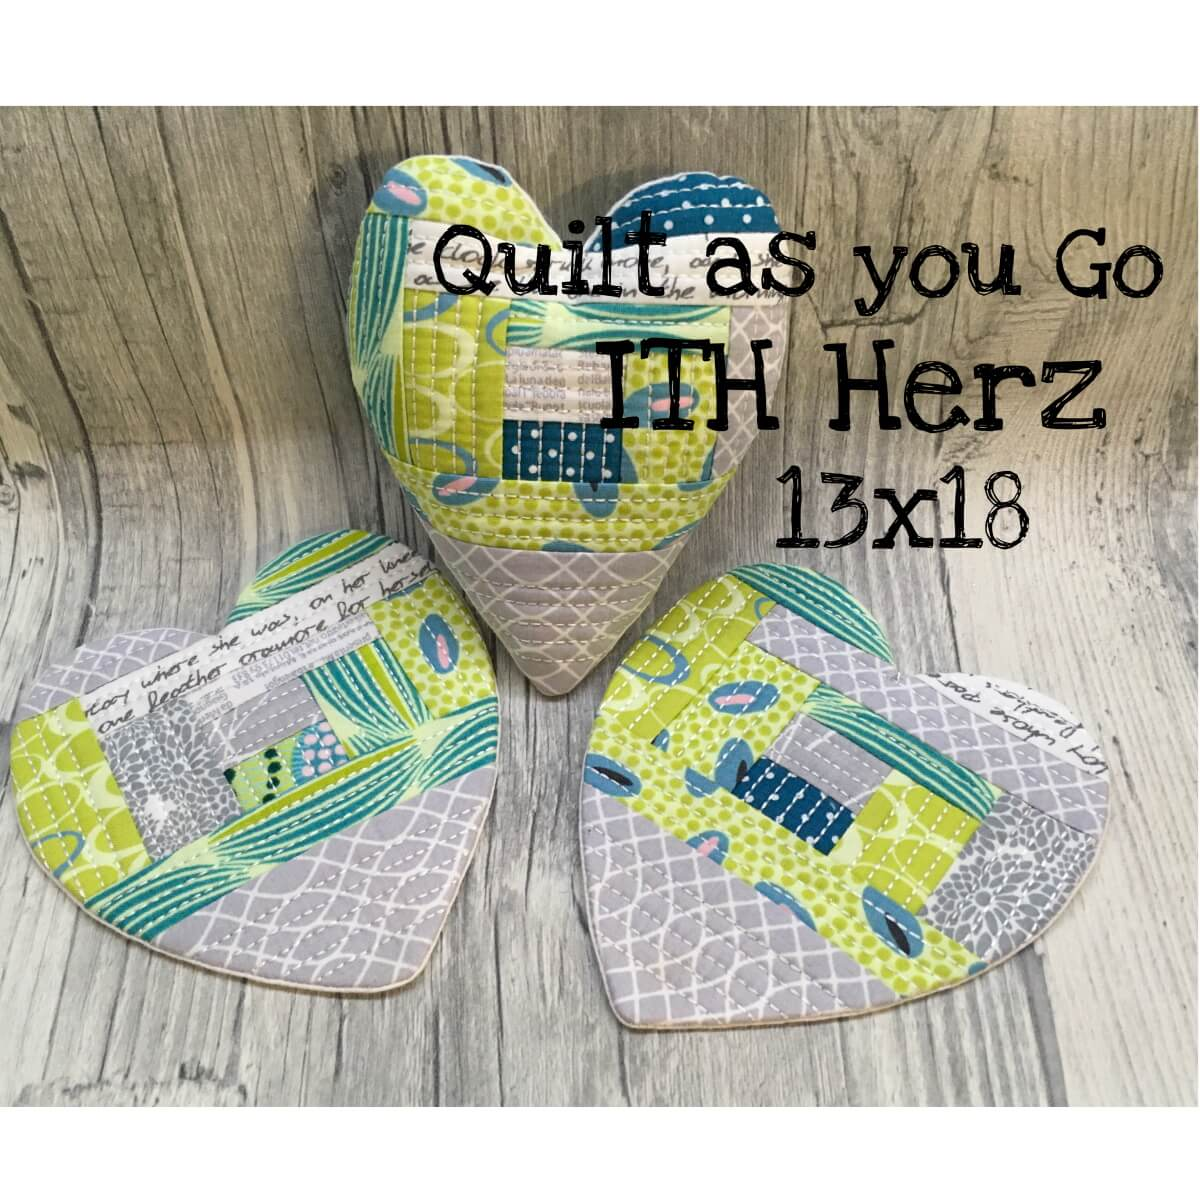 """ITH Herz """"Quilt as you go"""" Freebie"""